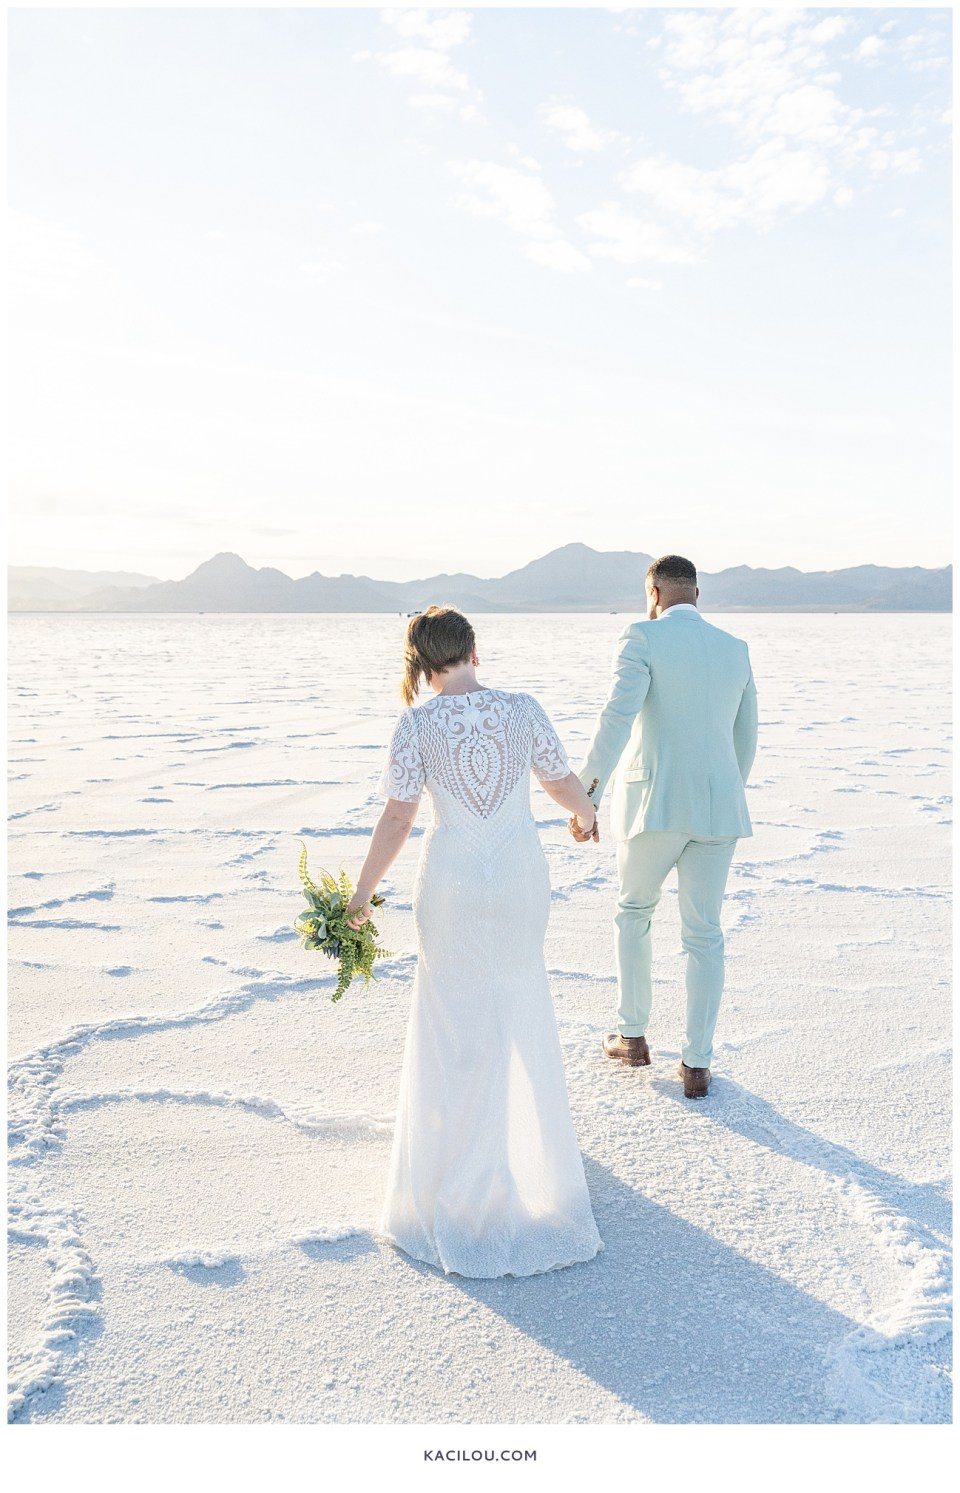 salt flats utah elopement tuesdae and ethan by kaci lou photography-168.jpg